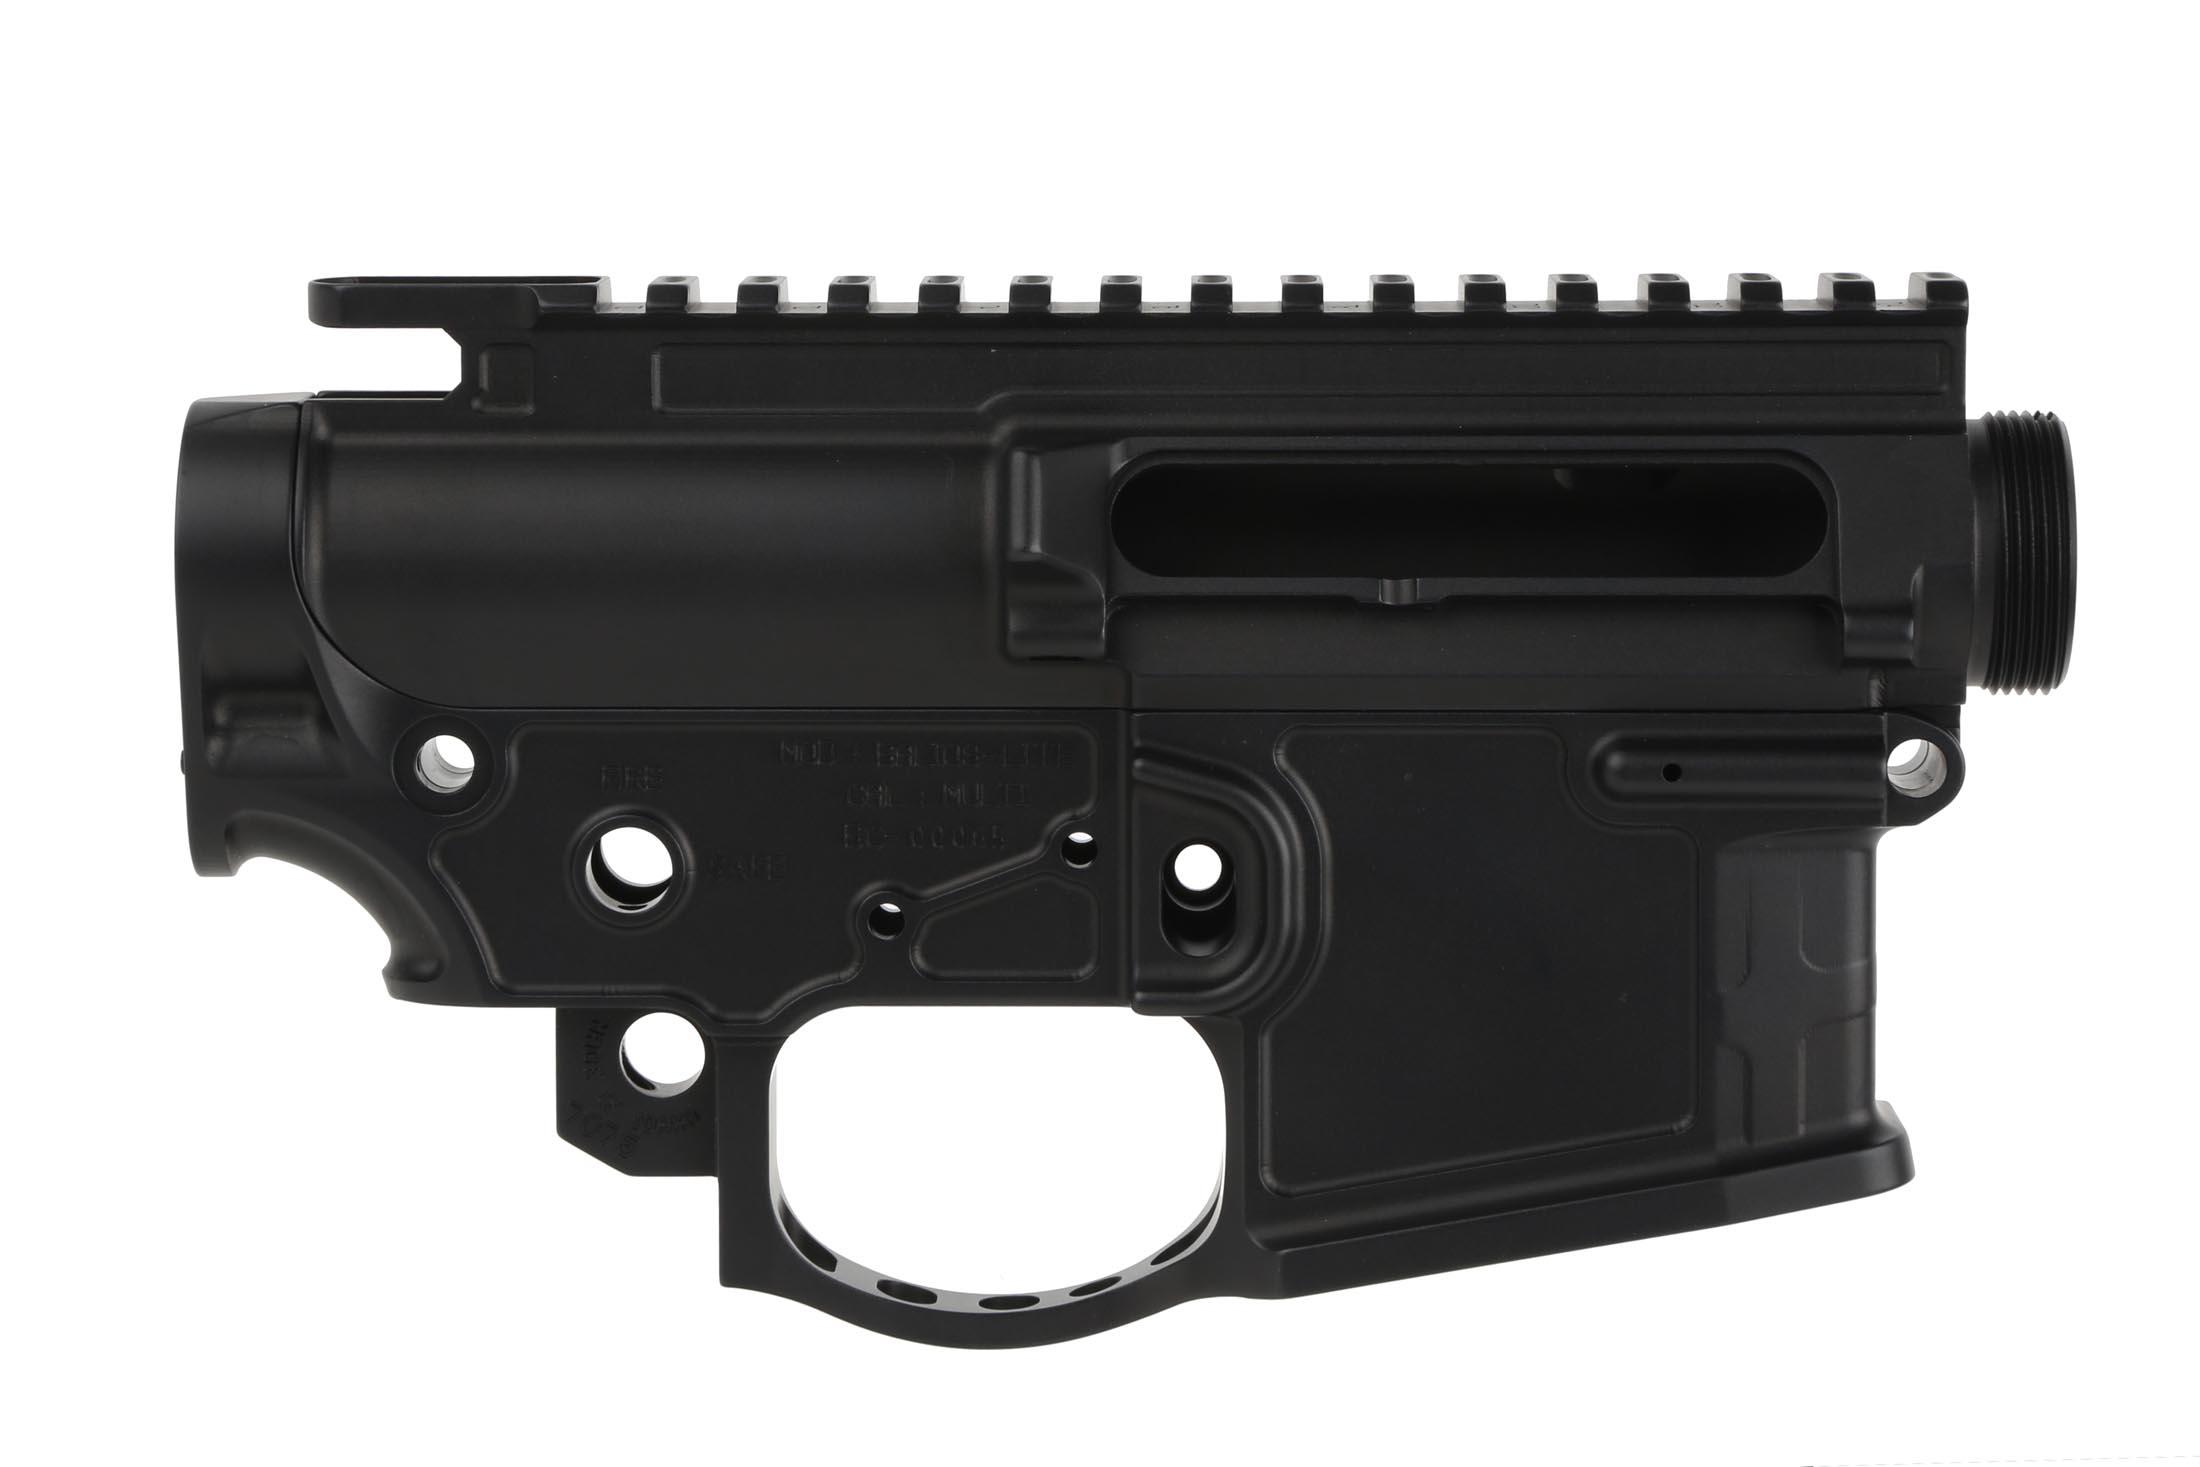 The 2A Armament Balios Lite Gen 2 receiver set is a slick side design without a forward assist